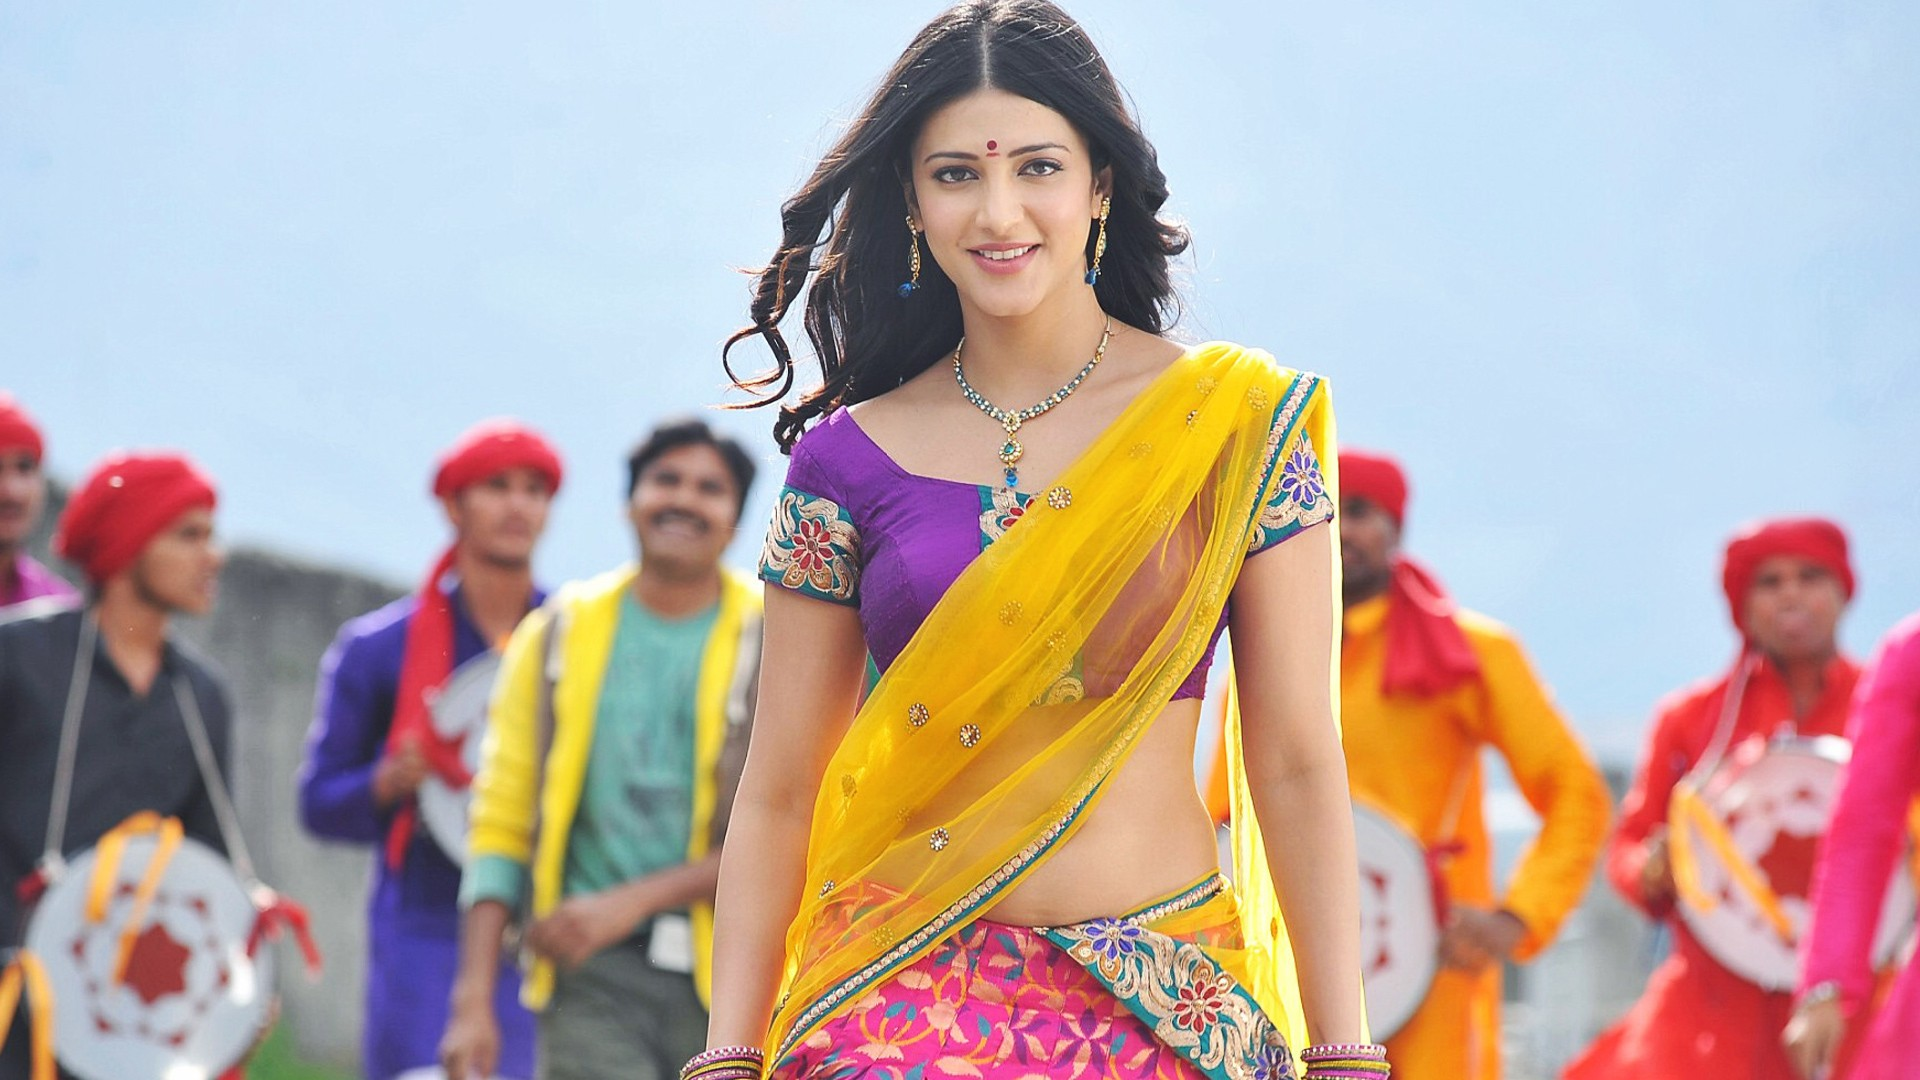 Gabbar Singh Wallpapers Hd Shruti Hassan In Gabbar Singh Wallpapers Hd Wallpapers